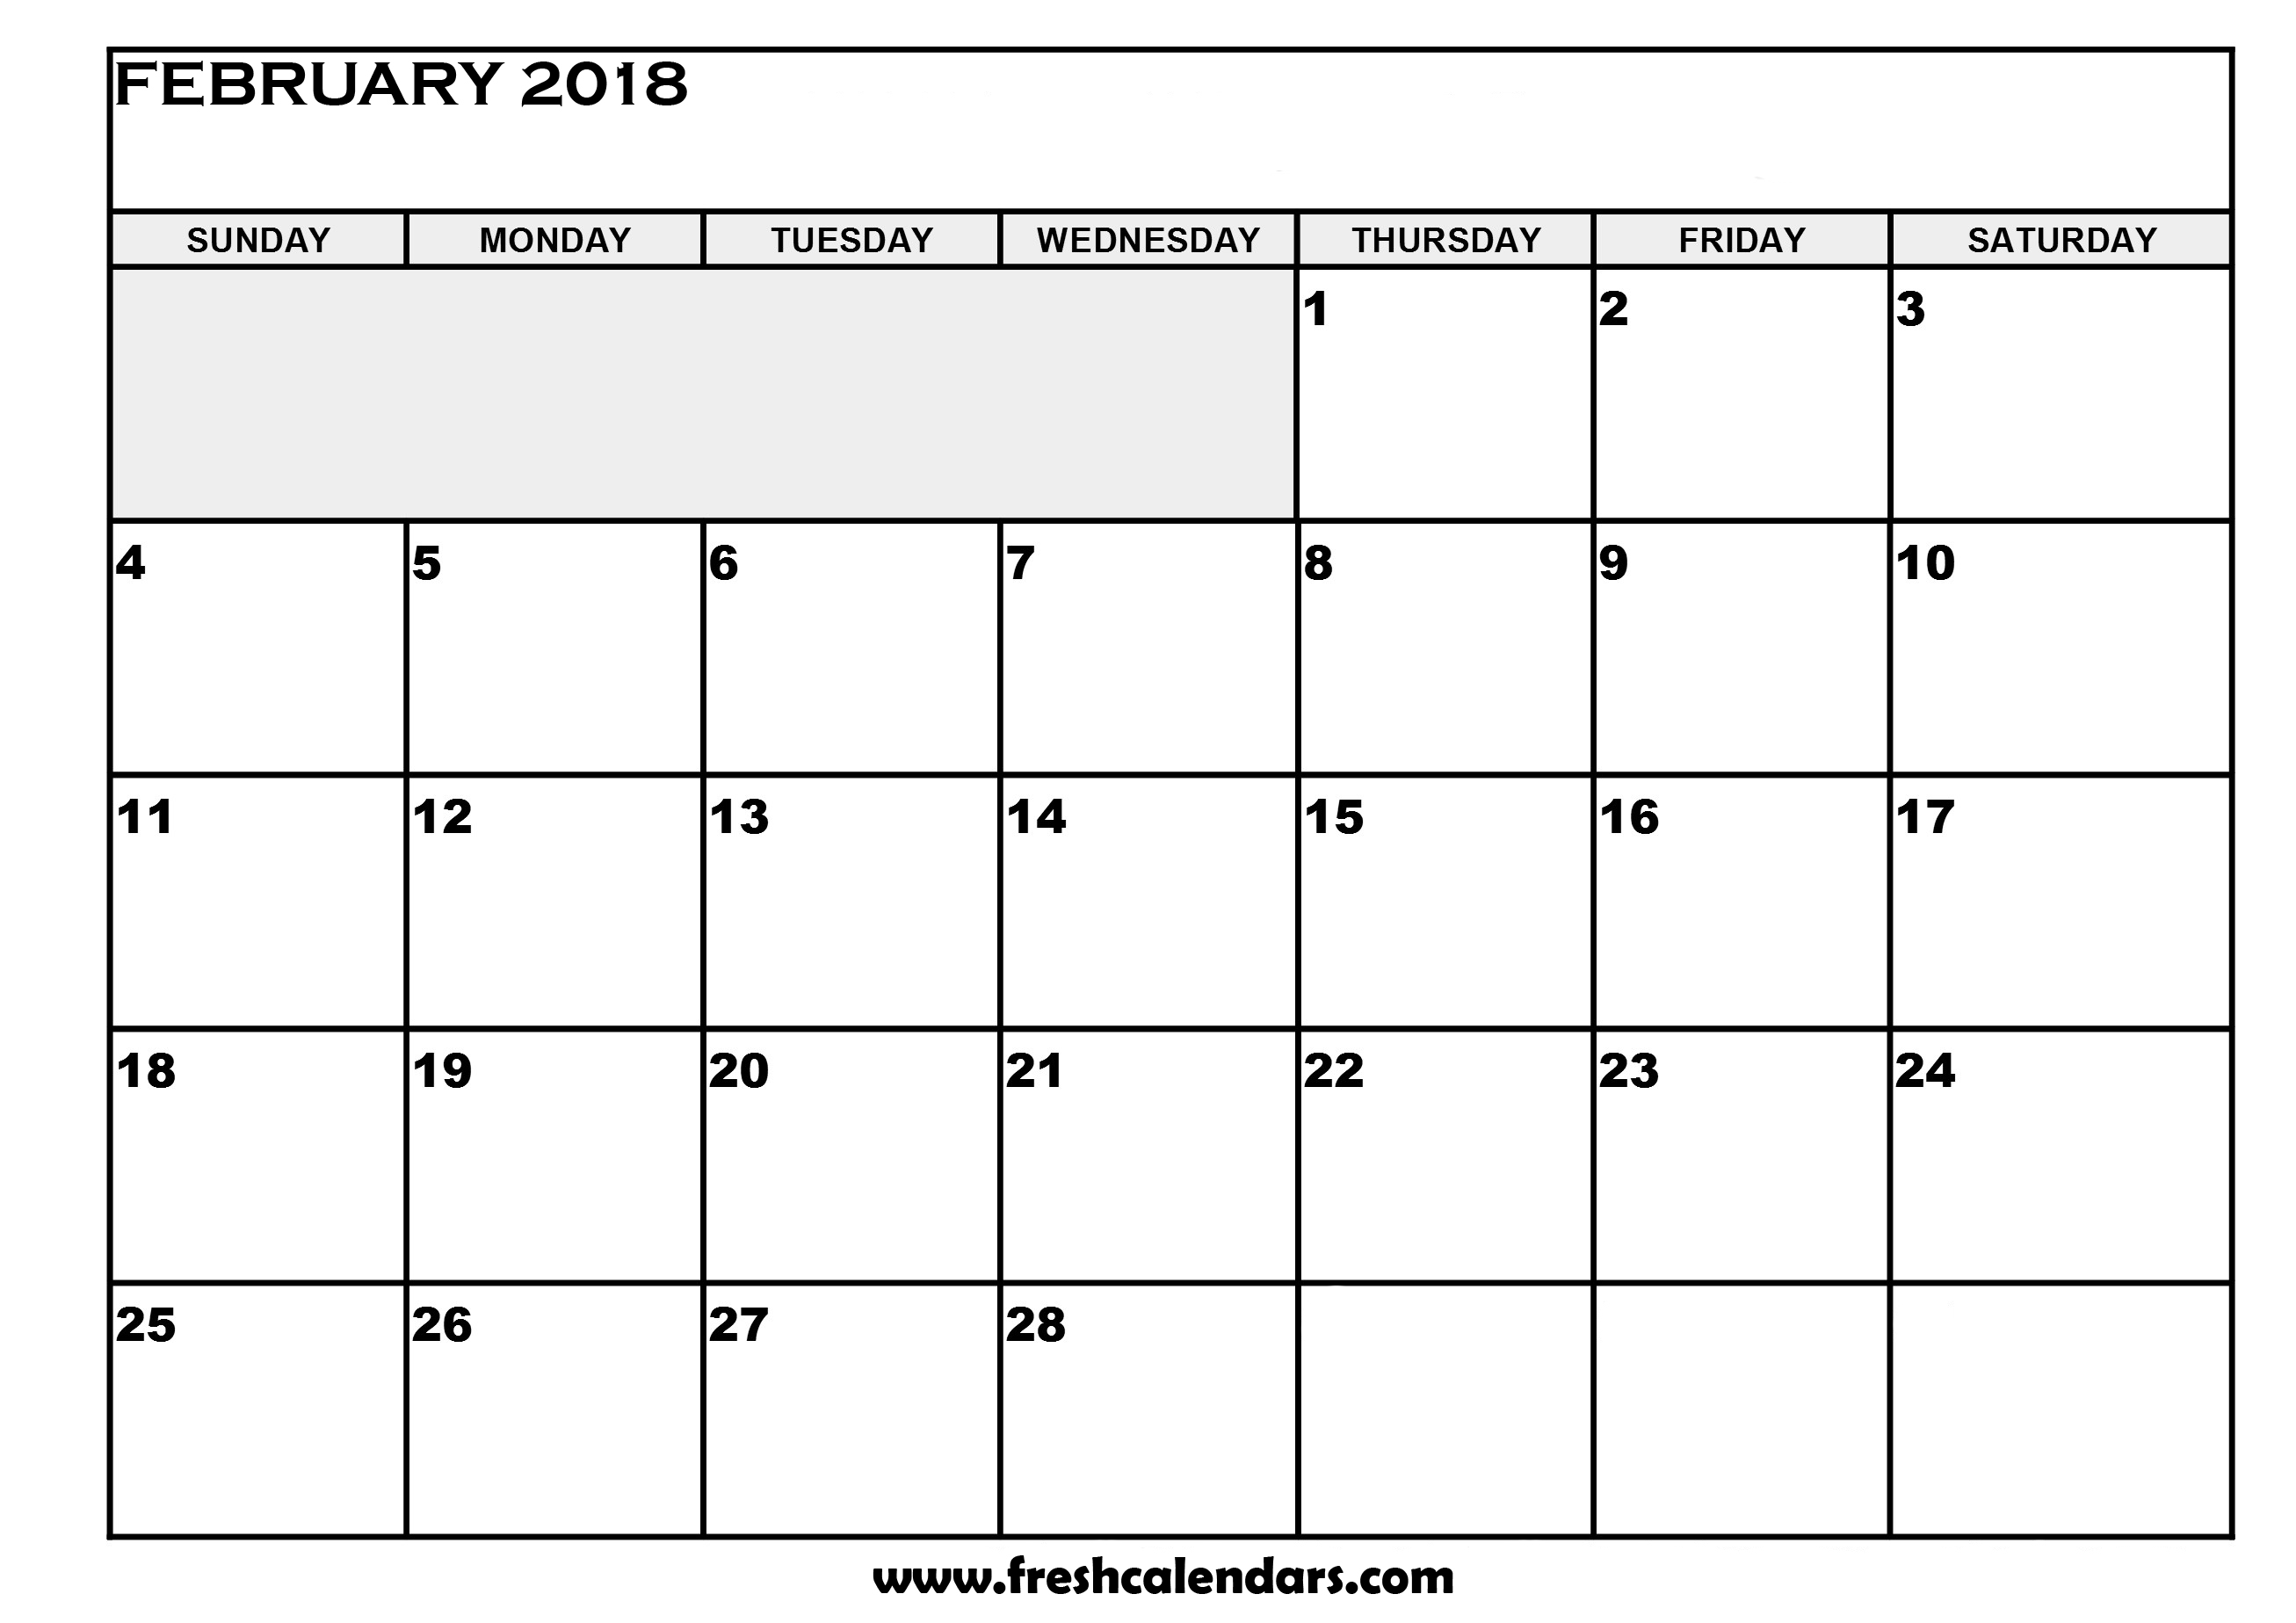 image regarding Printable Calendar February named February 2018 Calendar Printable - Fresh new Calendars